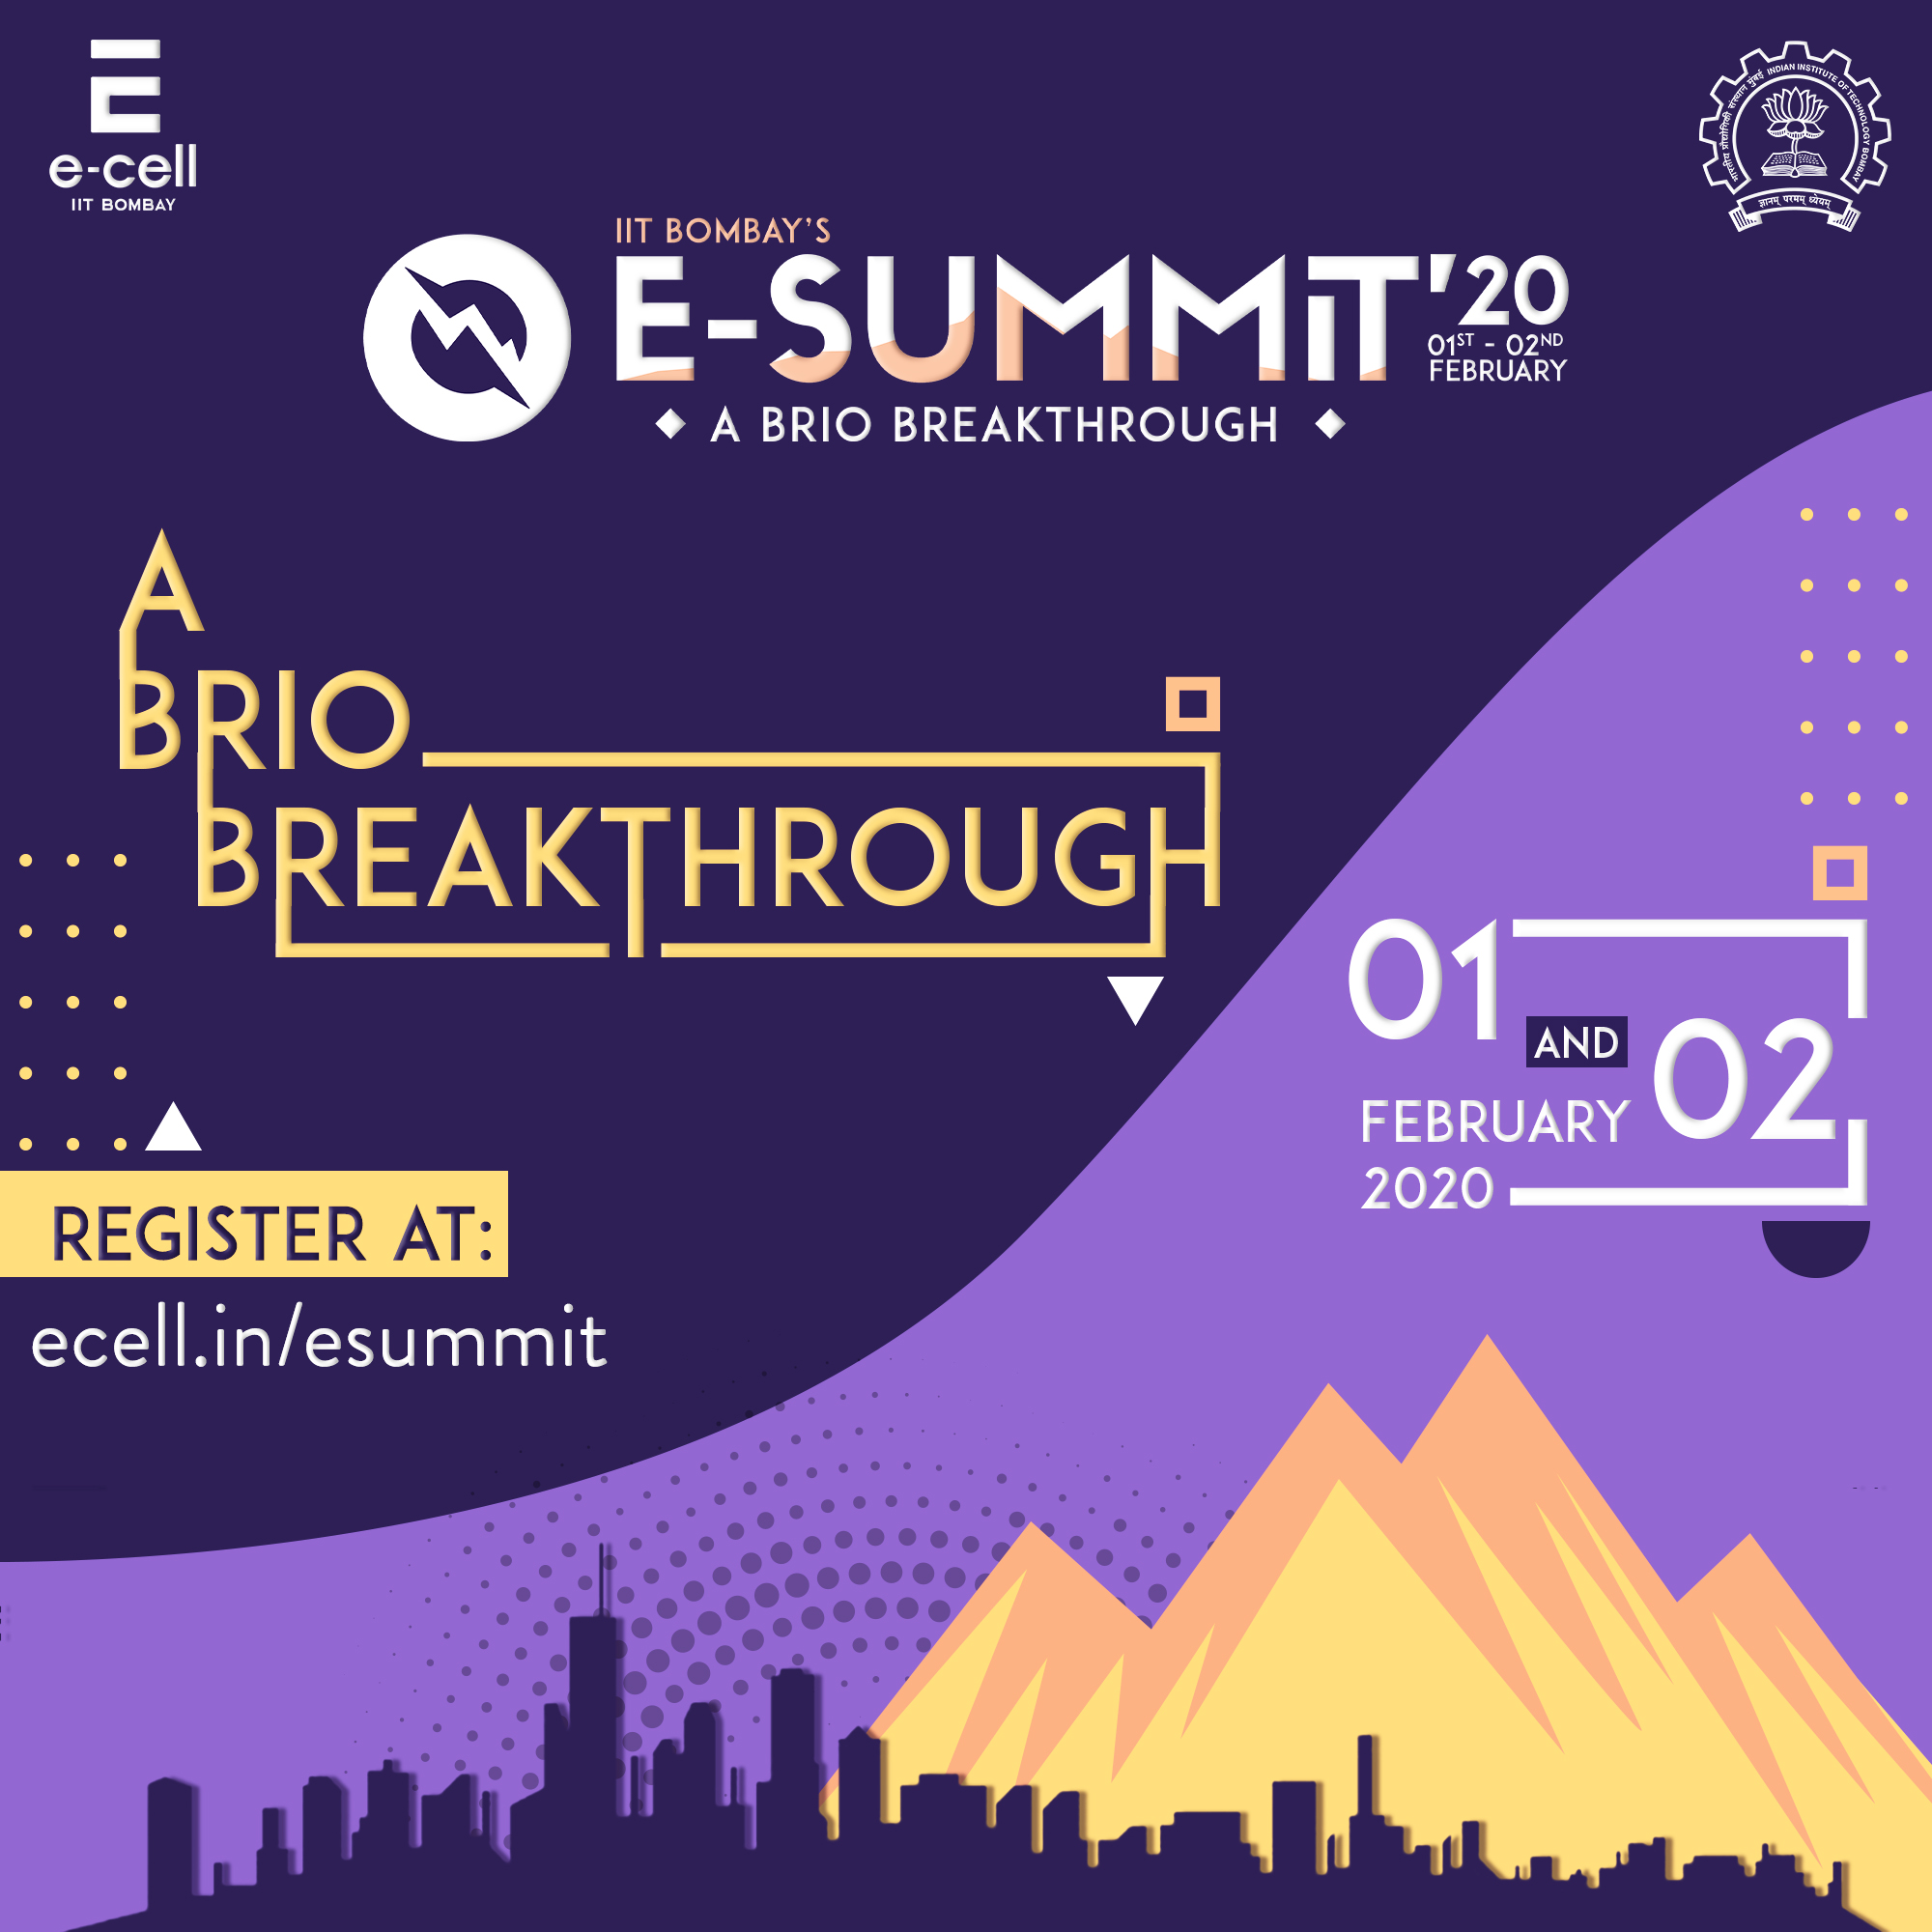 15th E-Summit by E-Cell, IIT Bombay